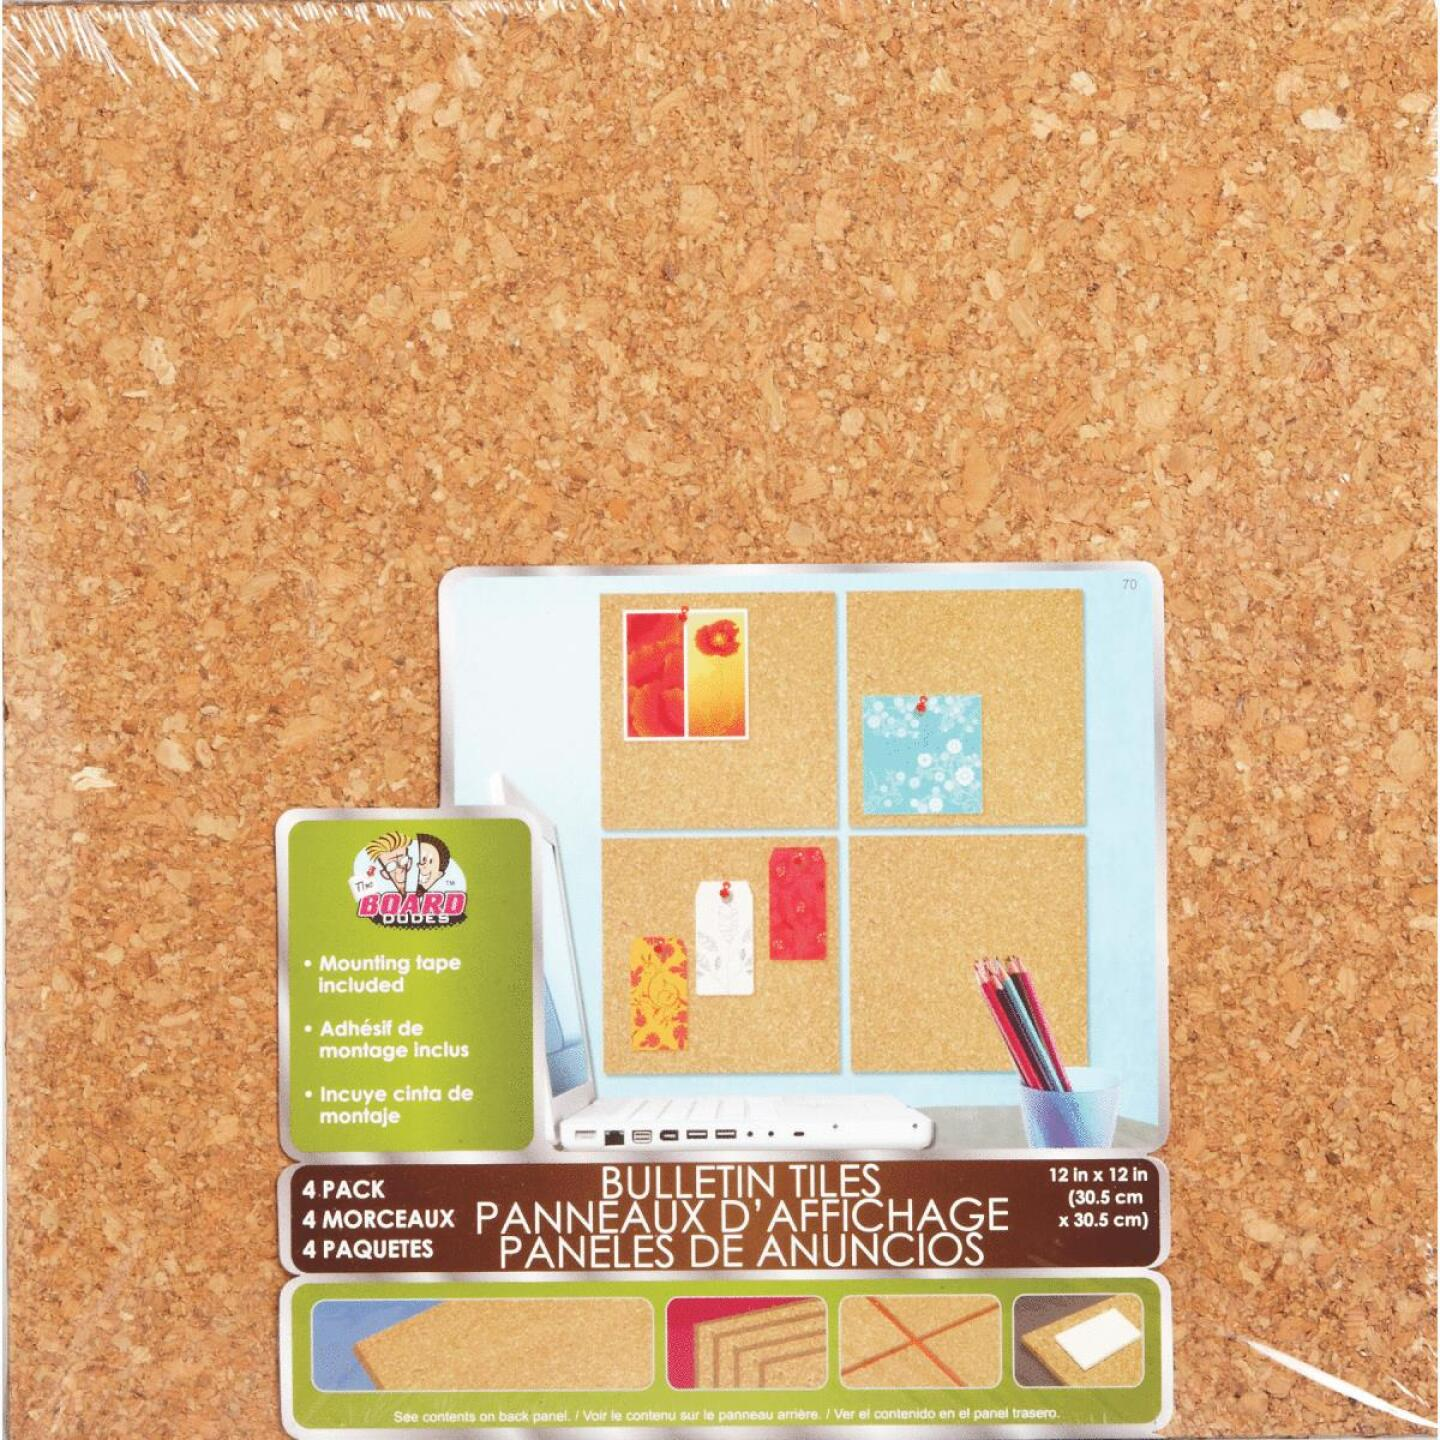 Board Dudes 12 In. x 12 In. Light Cork Tiles (4 Count) Image 2